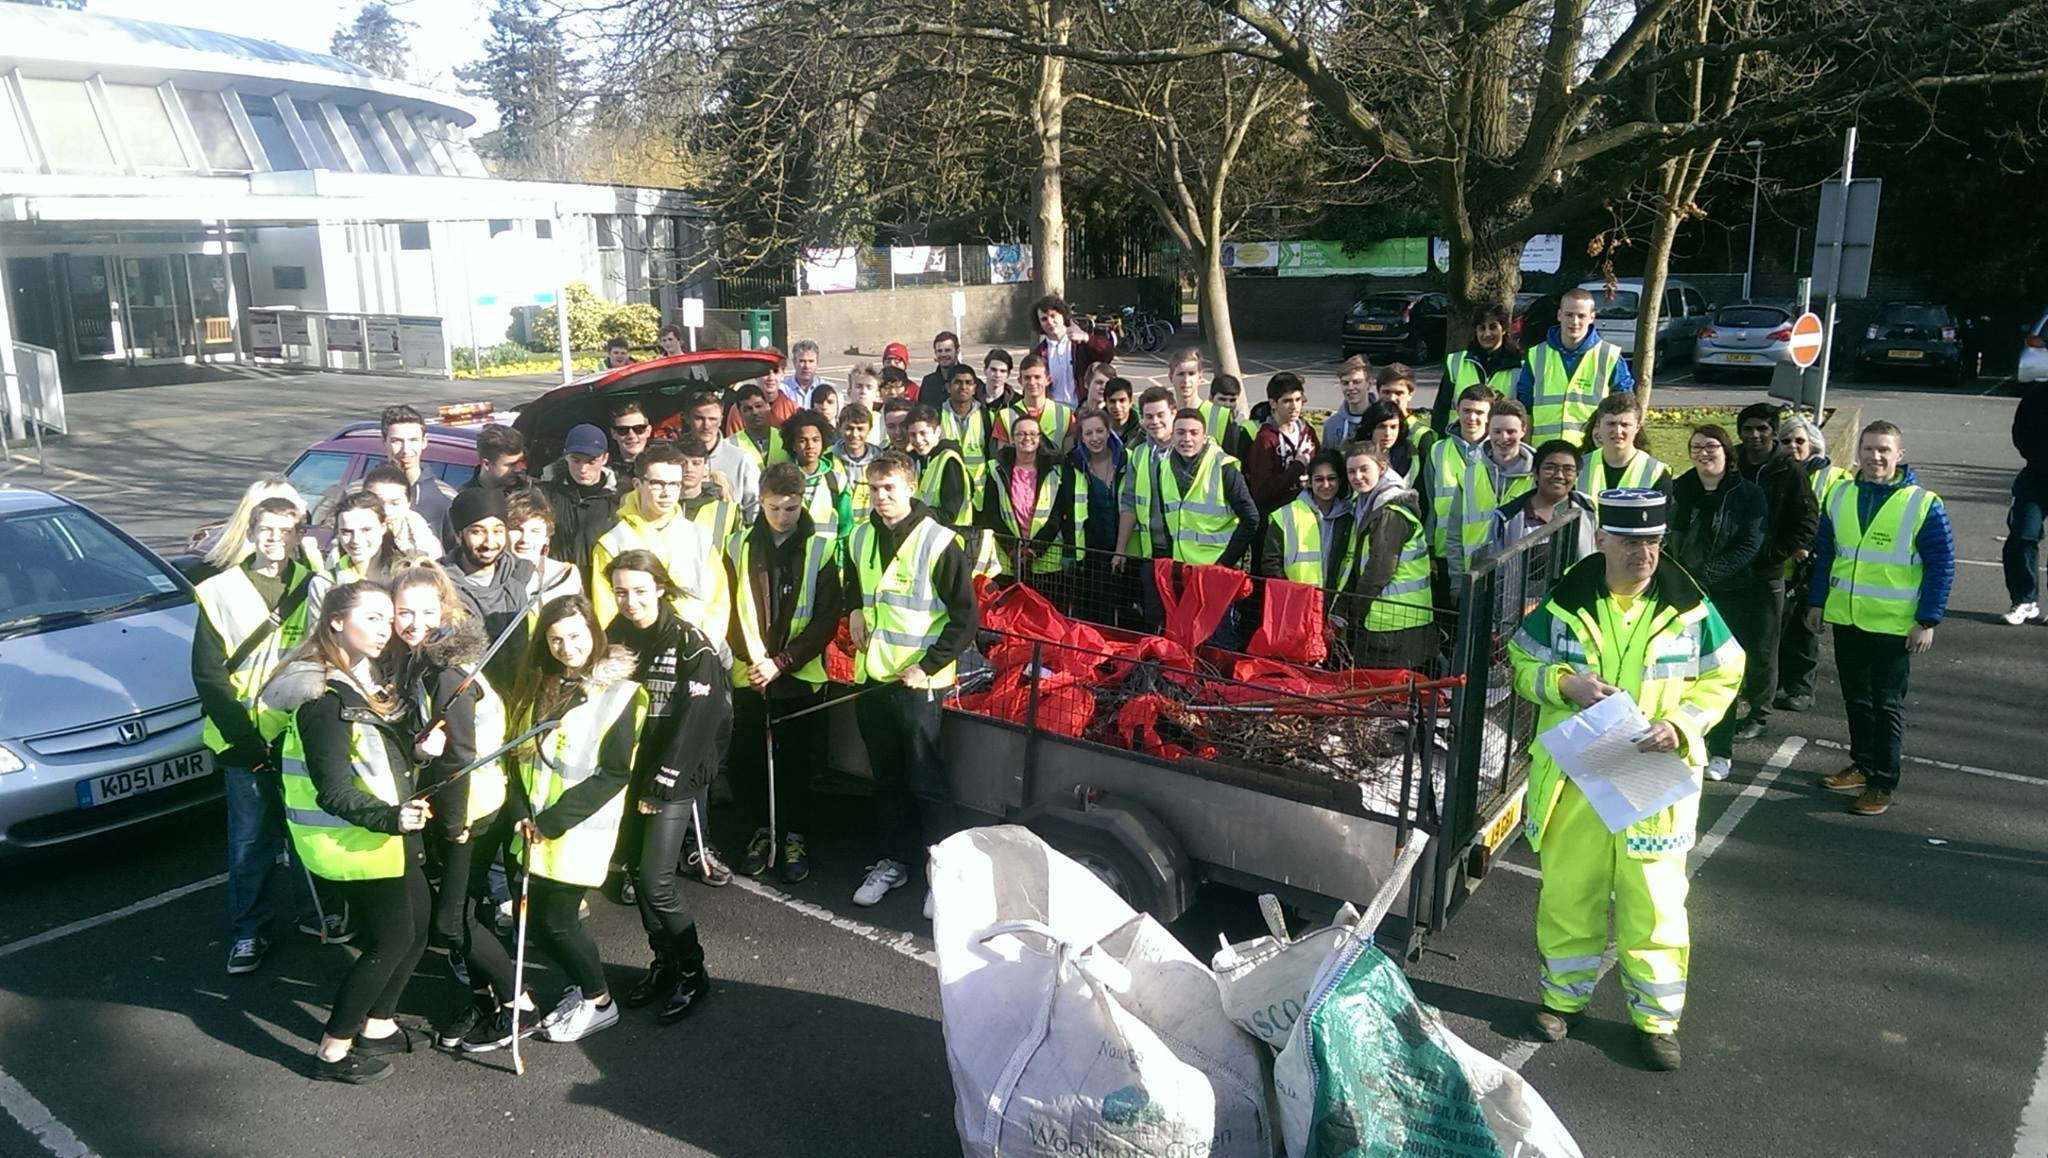 Ewell Village Association's spring-clean 2015